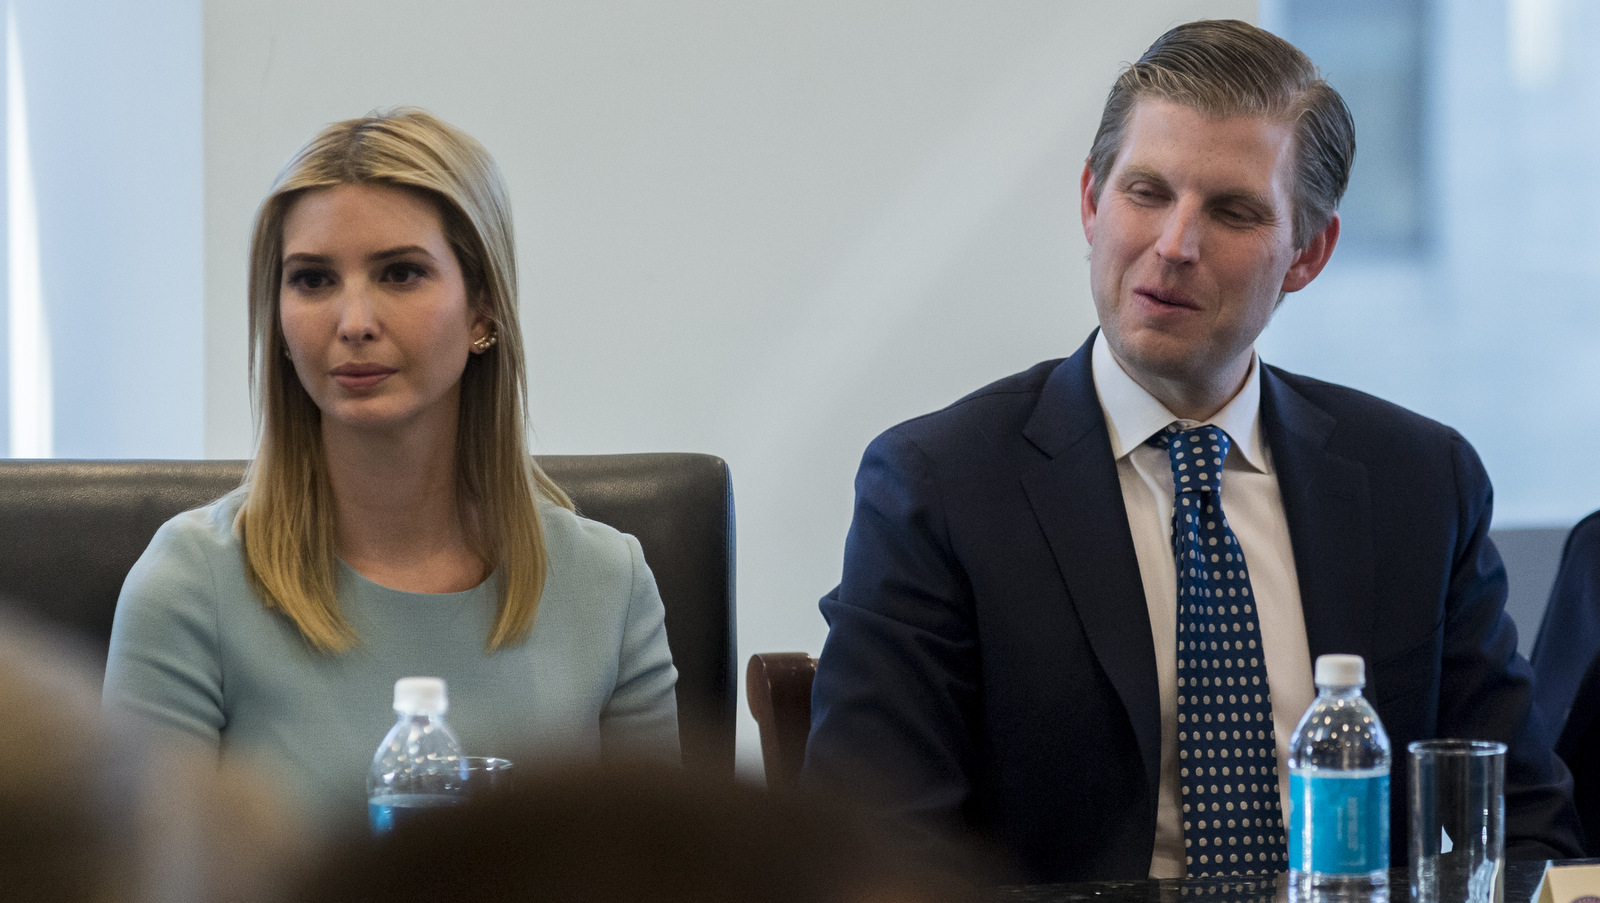 Trump Children Attend Father's Meeting With Top Tech Execs